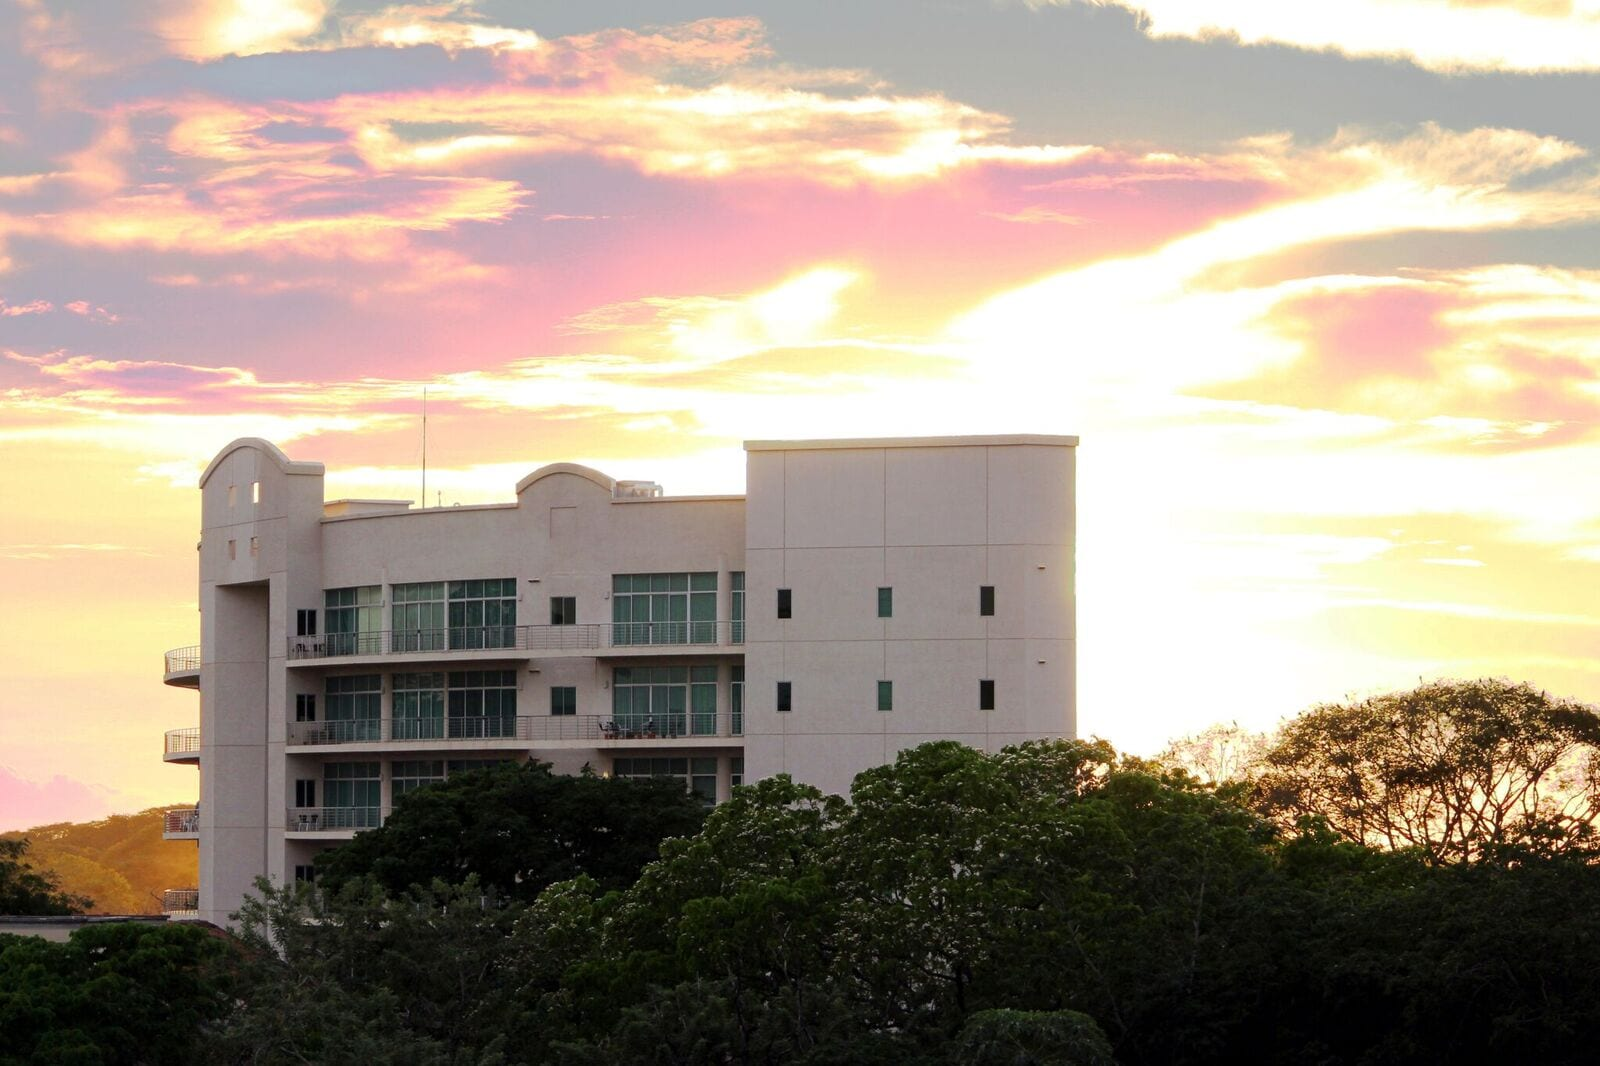 PP Sunset building